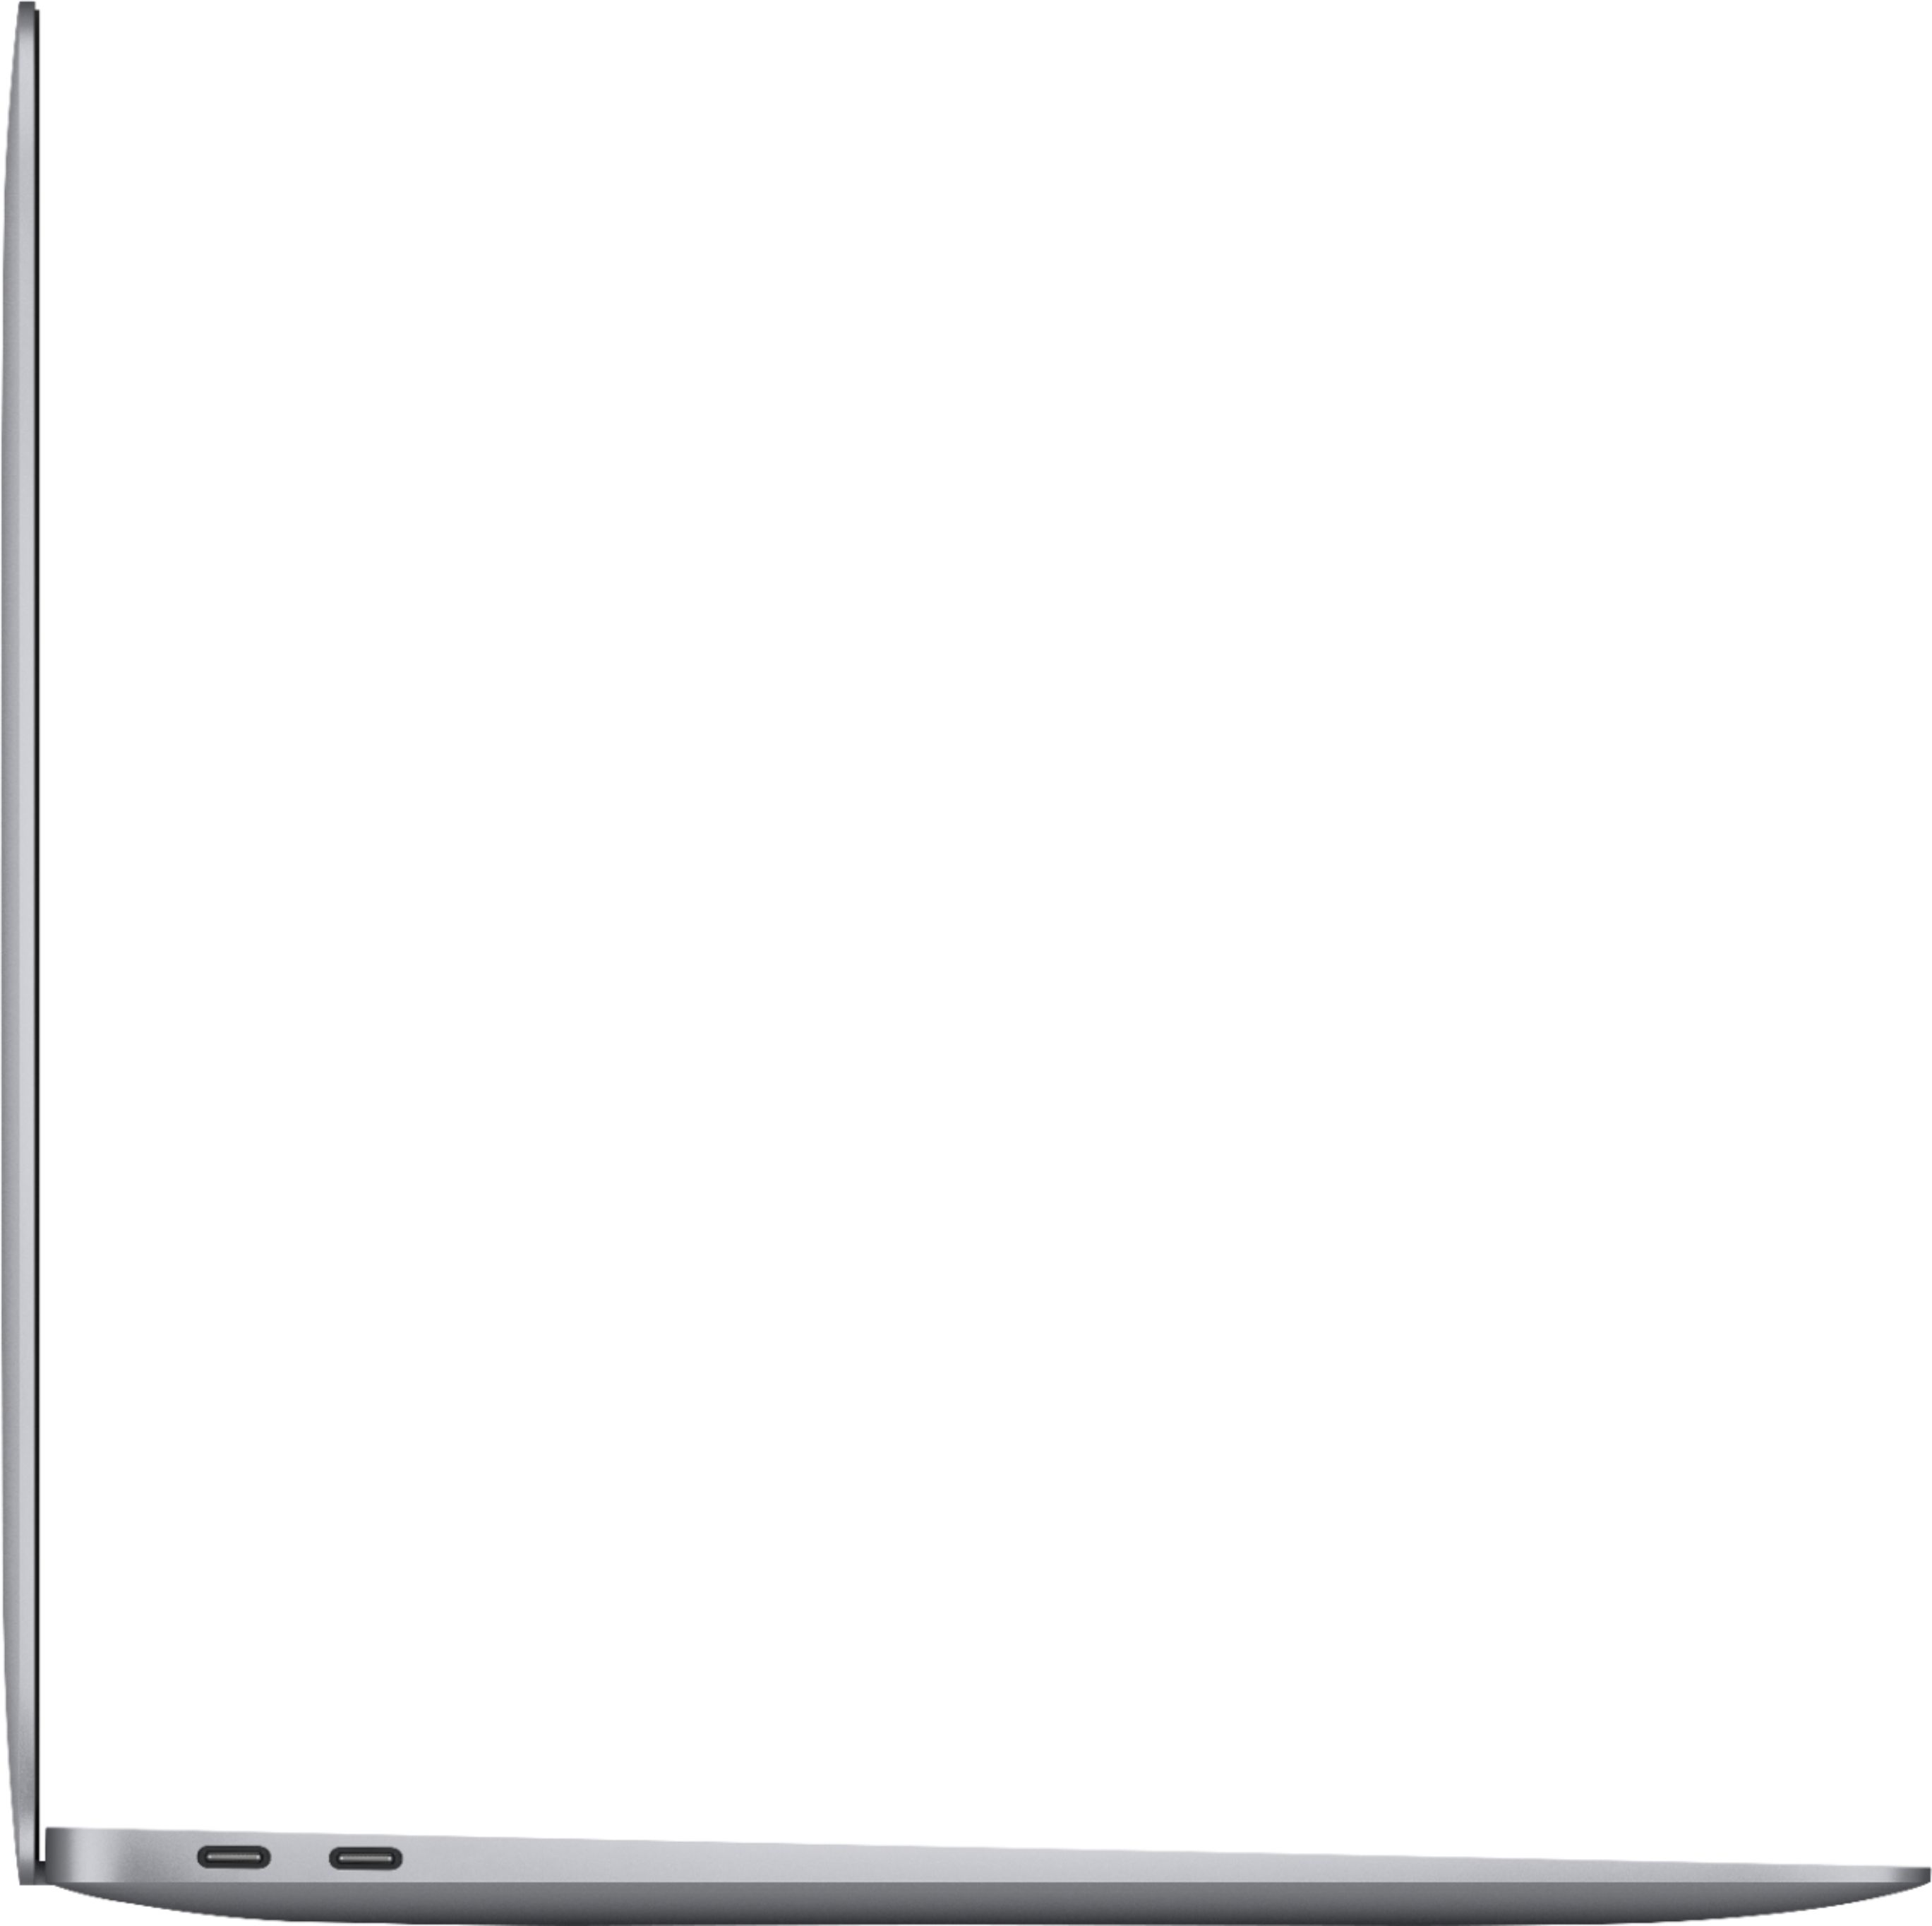 """Alt View Zoom 13. MacBook Air 13.3"""" Laptop - Apple M1 chip - 8GB Memory - 256GB SSD (Latest Model) - Space Gray."""